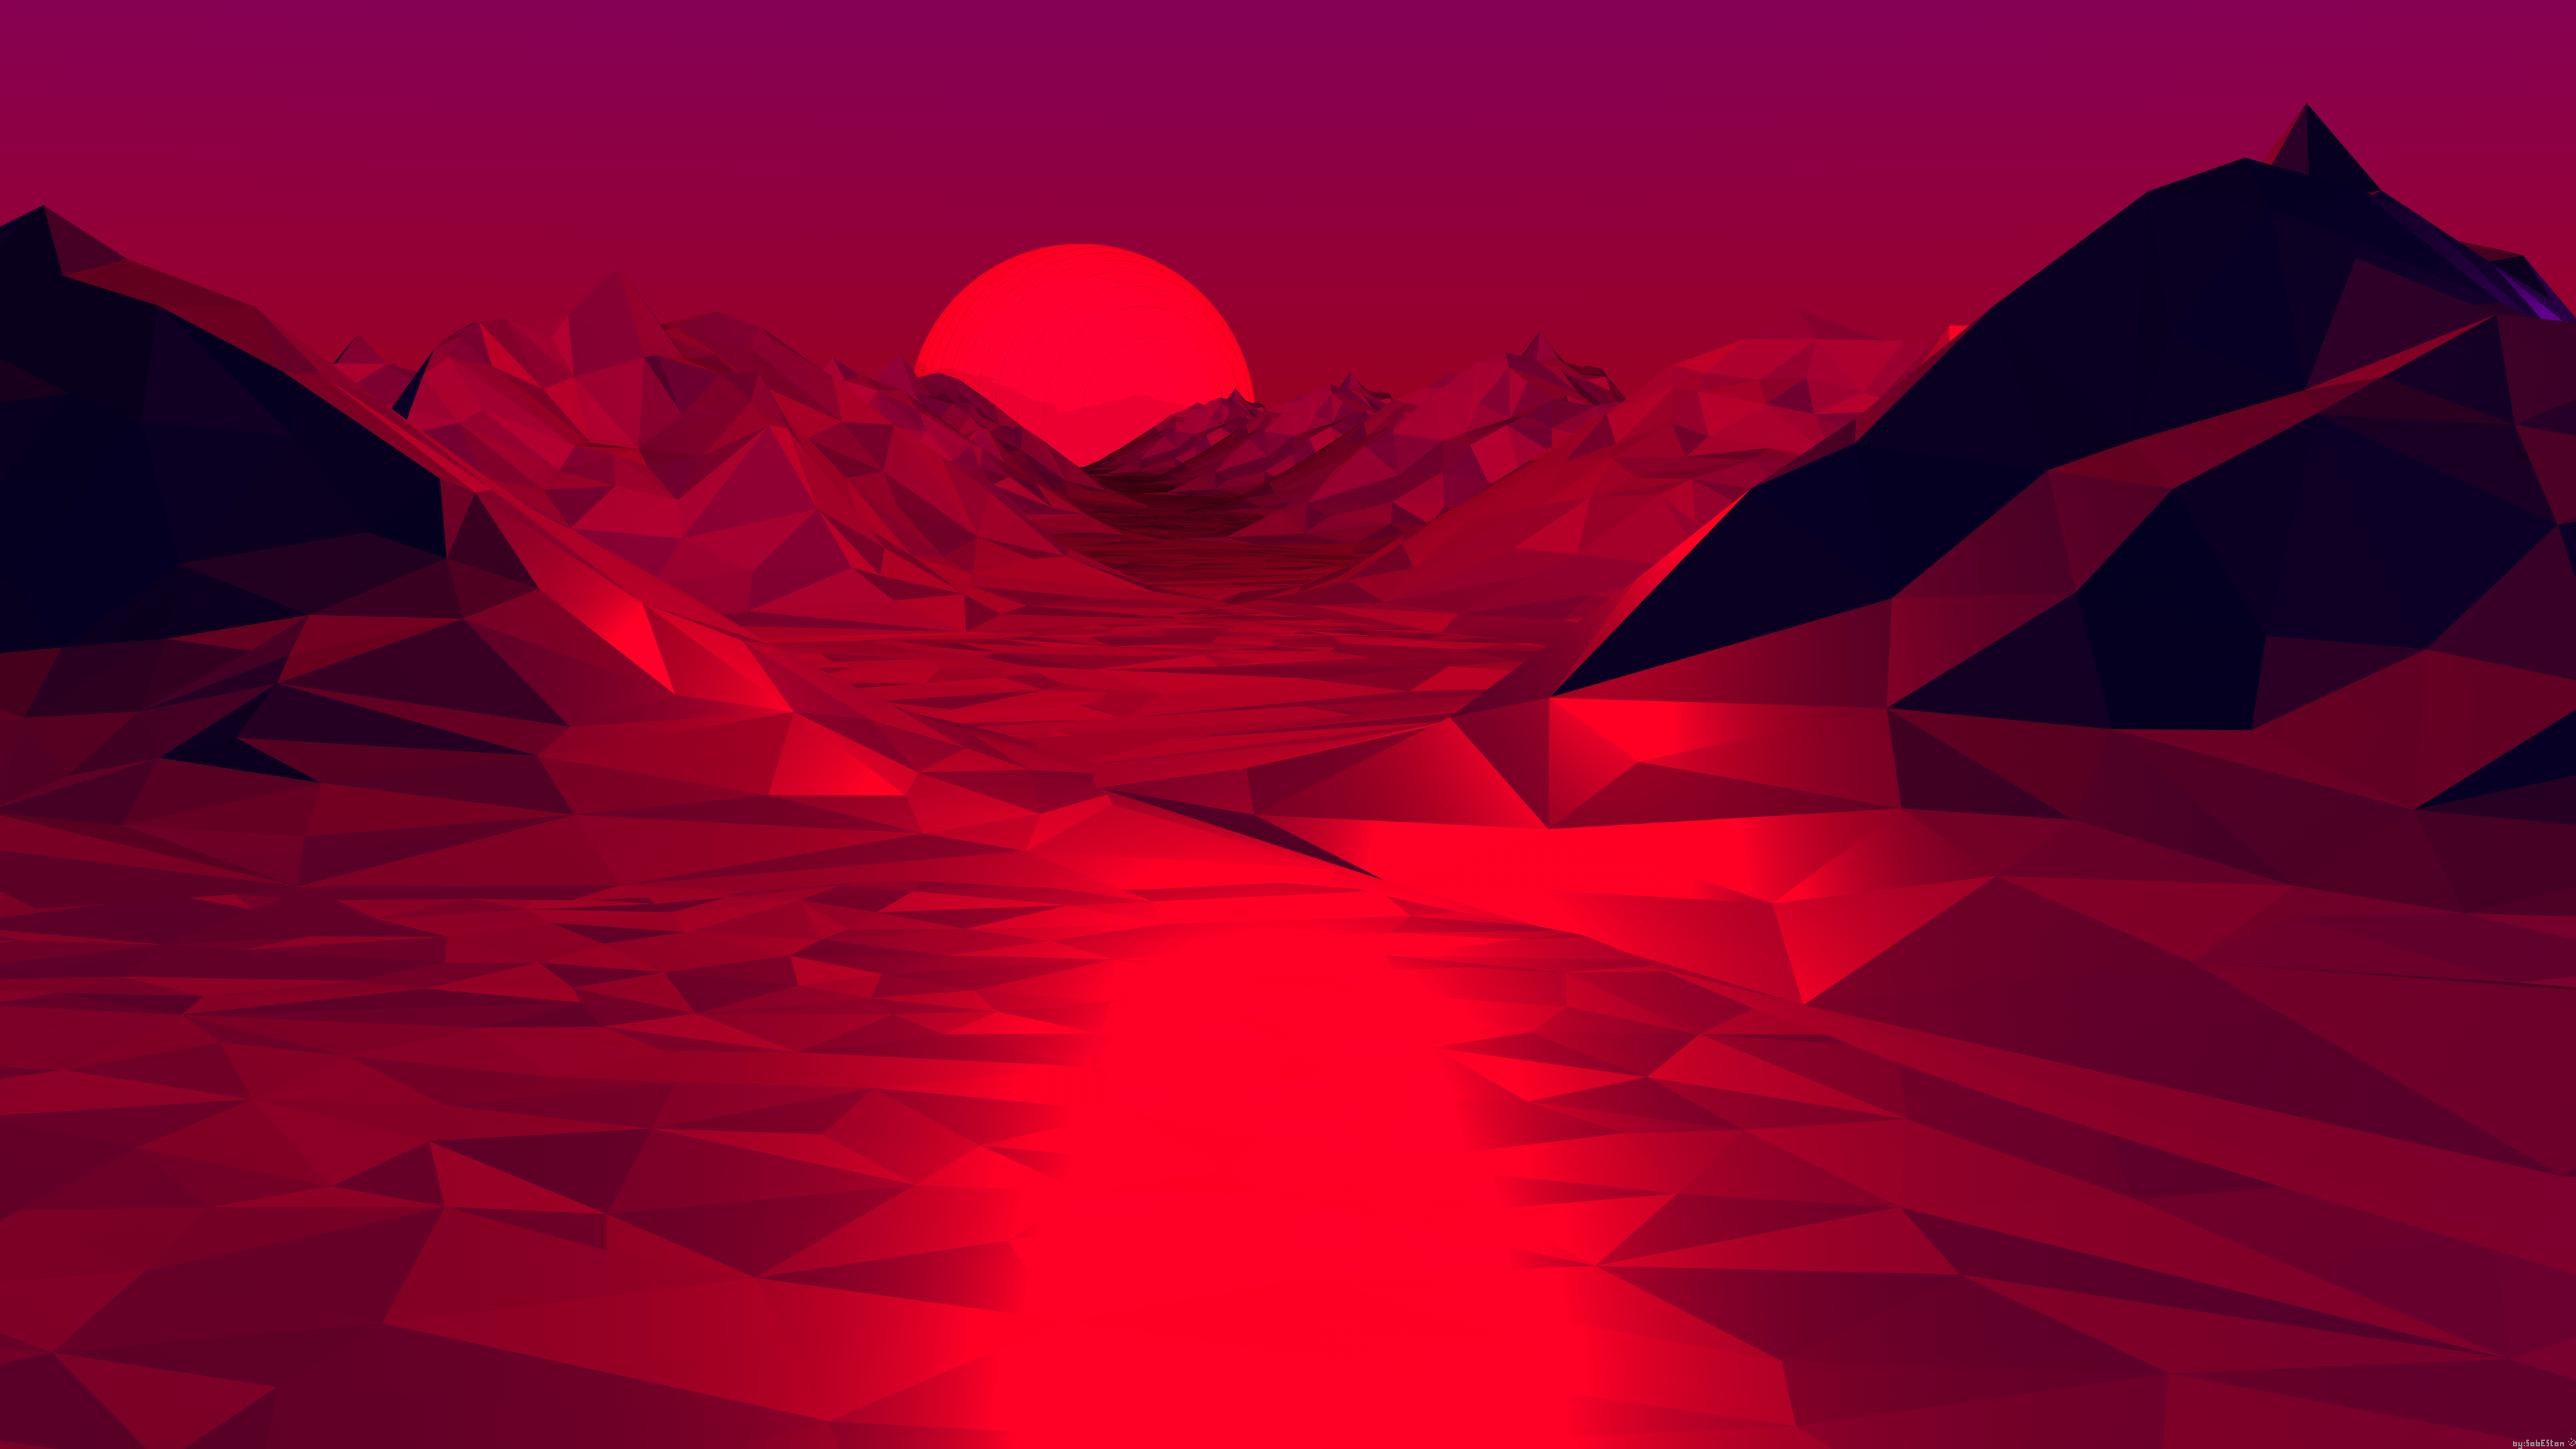 Red Aesthetic Computer Wallpapers   Top Red Aesthetic 3840x2160